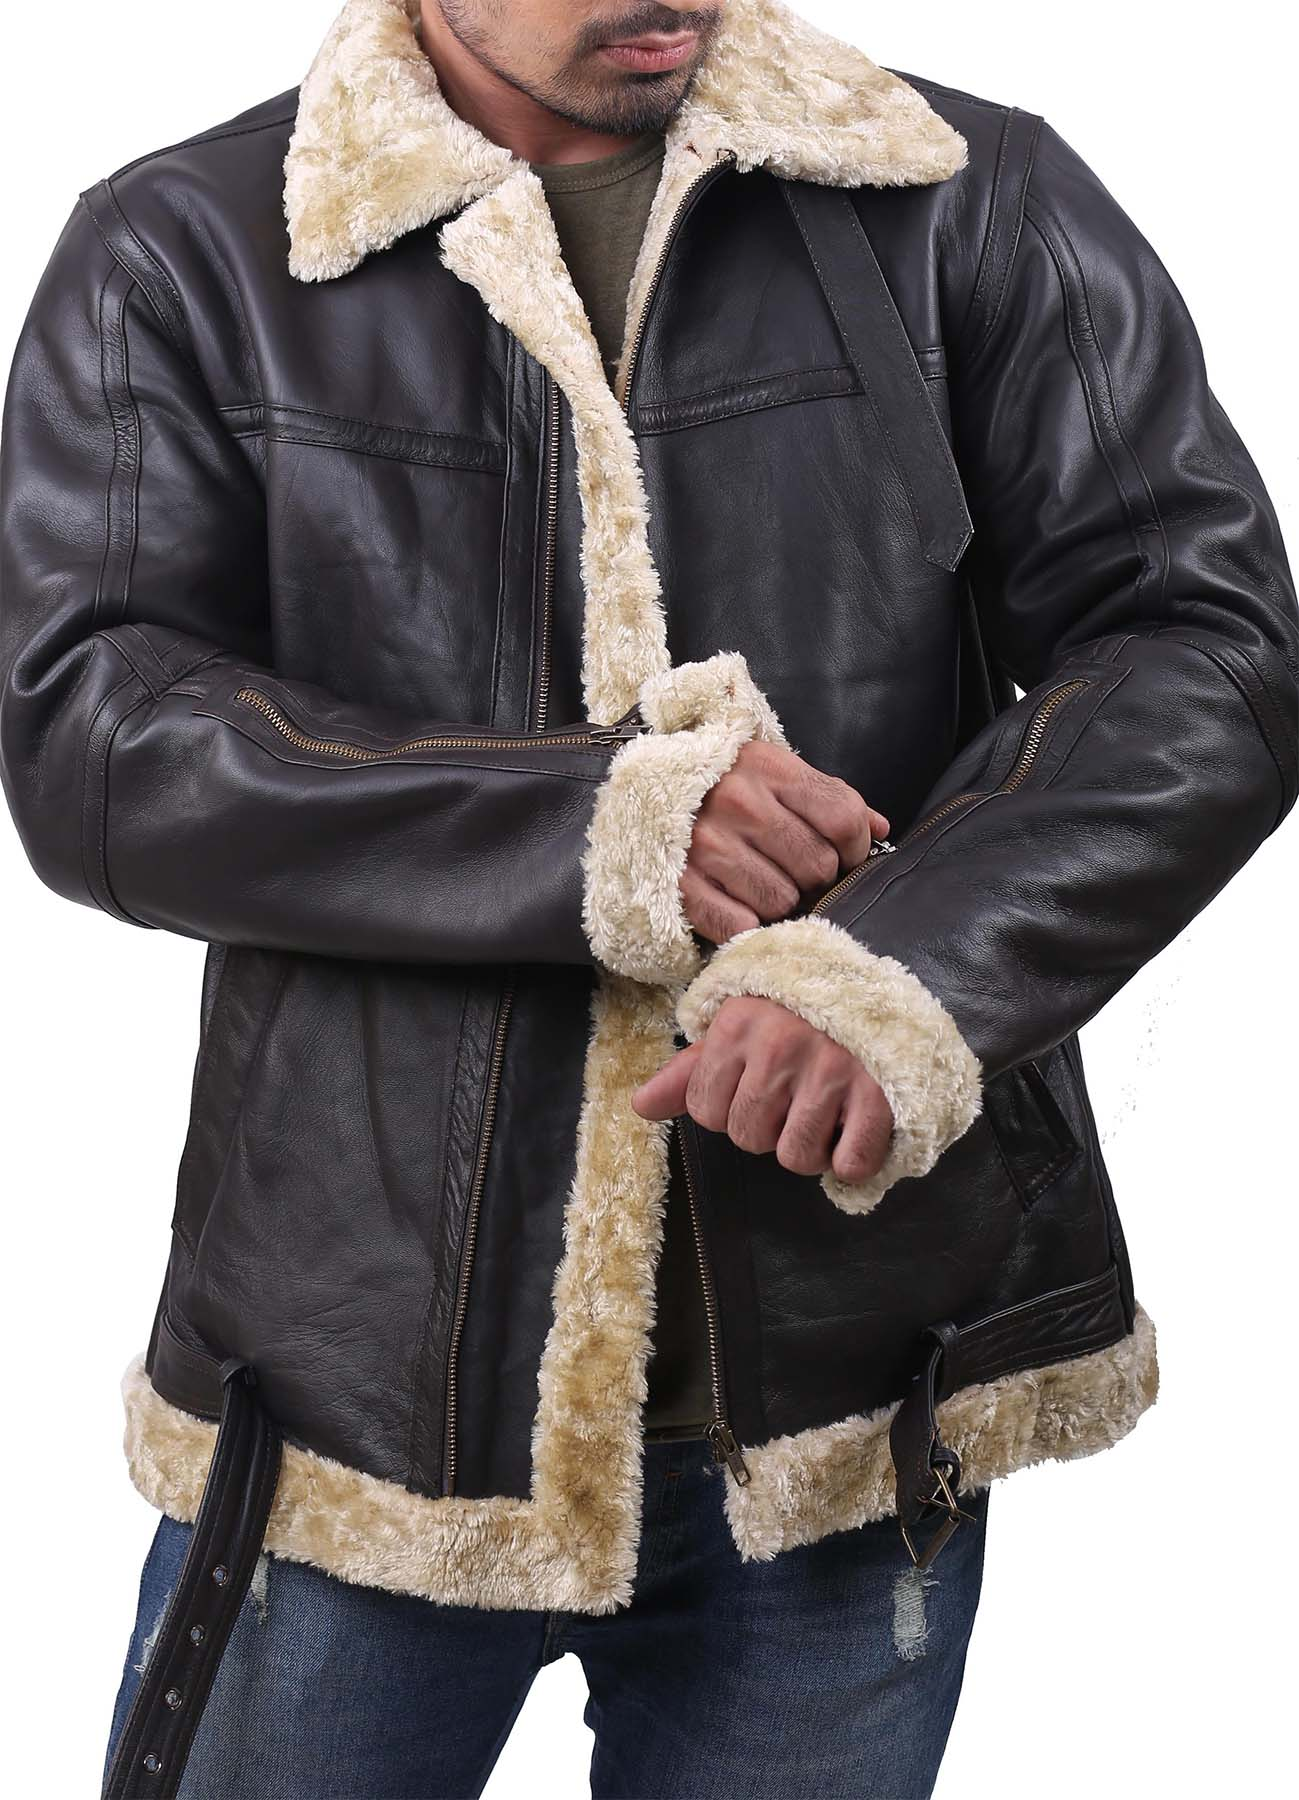 Black Soft B3 Leather Jacket With Golden Shearling